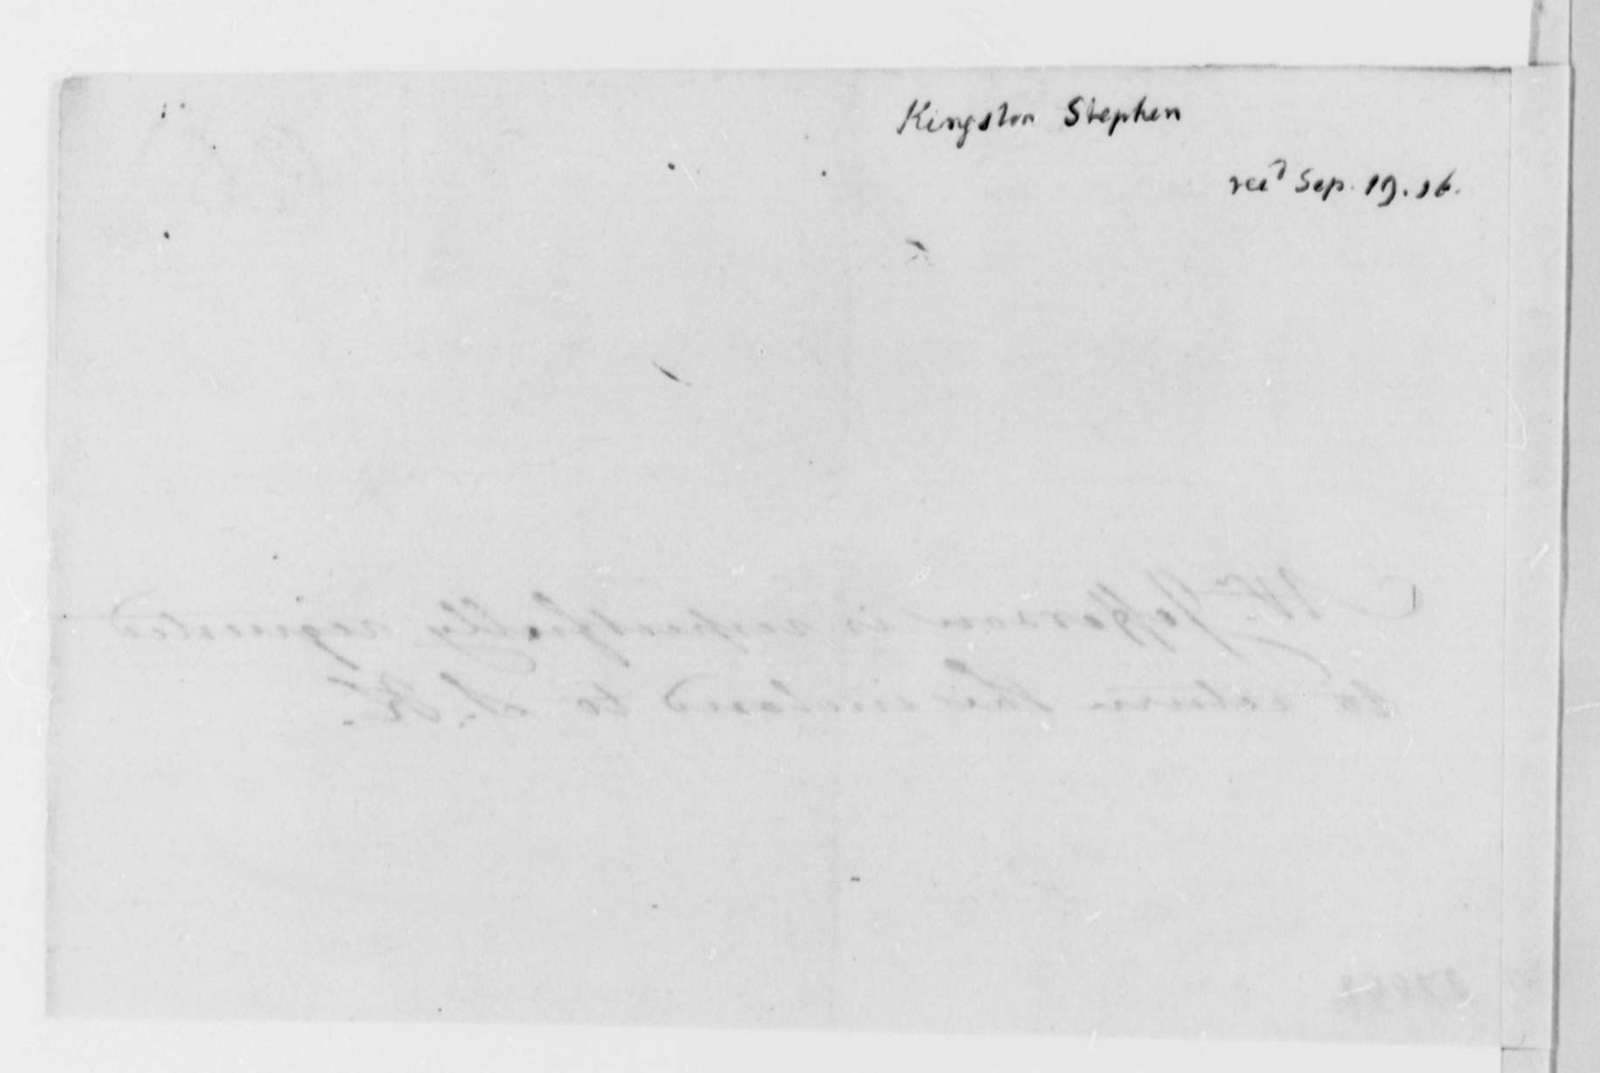 Stephen Kingston to Thomas Jefferson, September 12, 1816